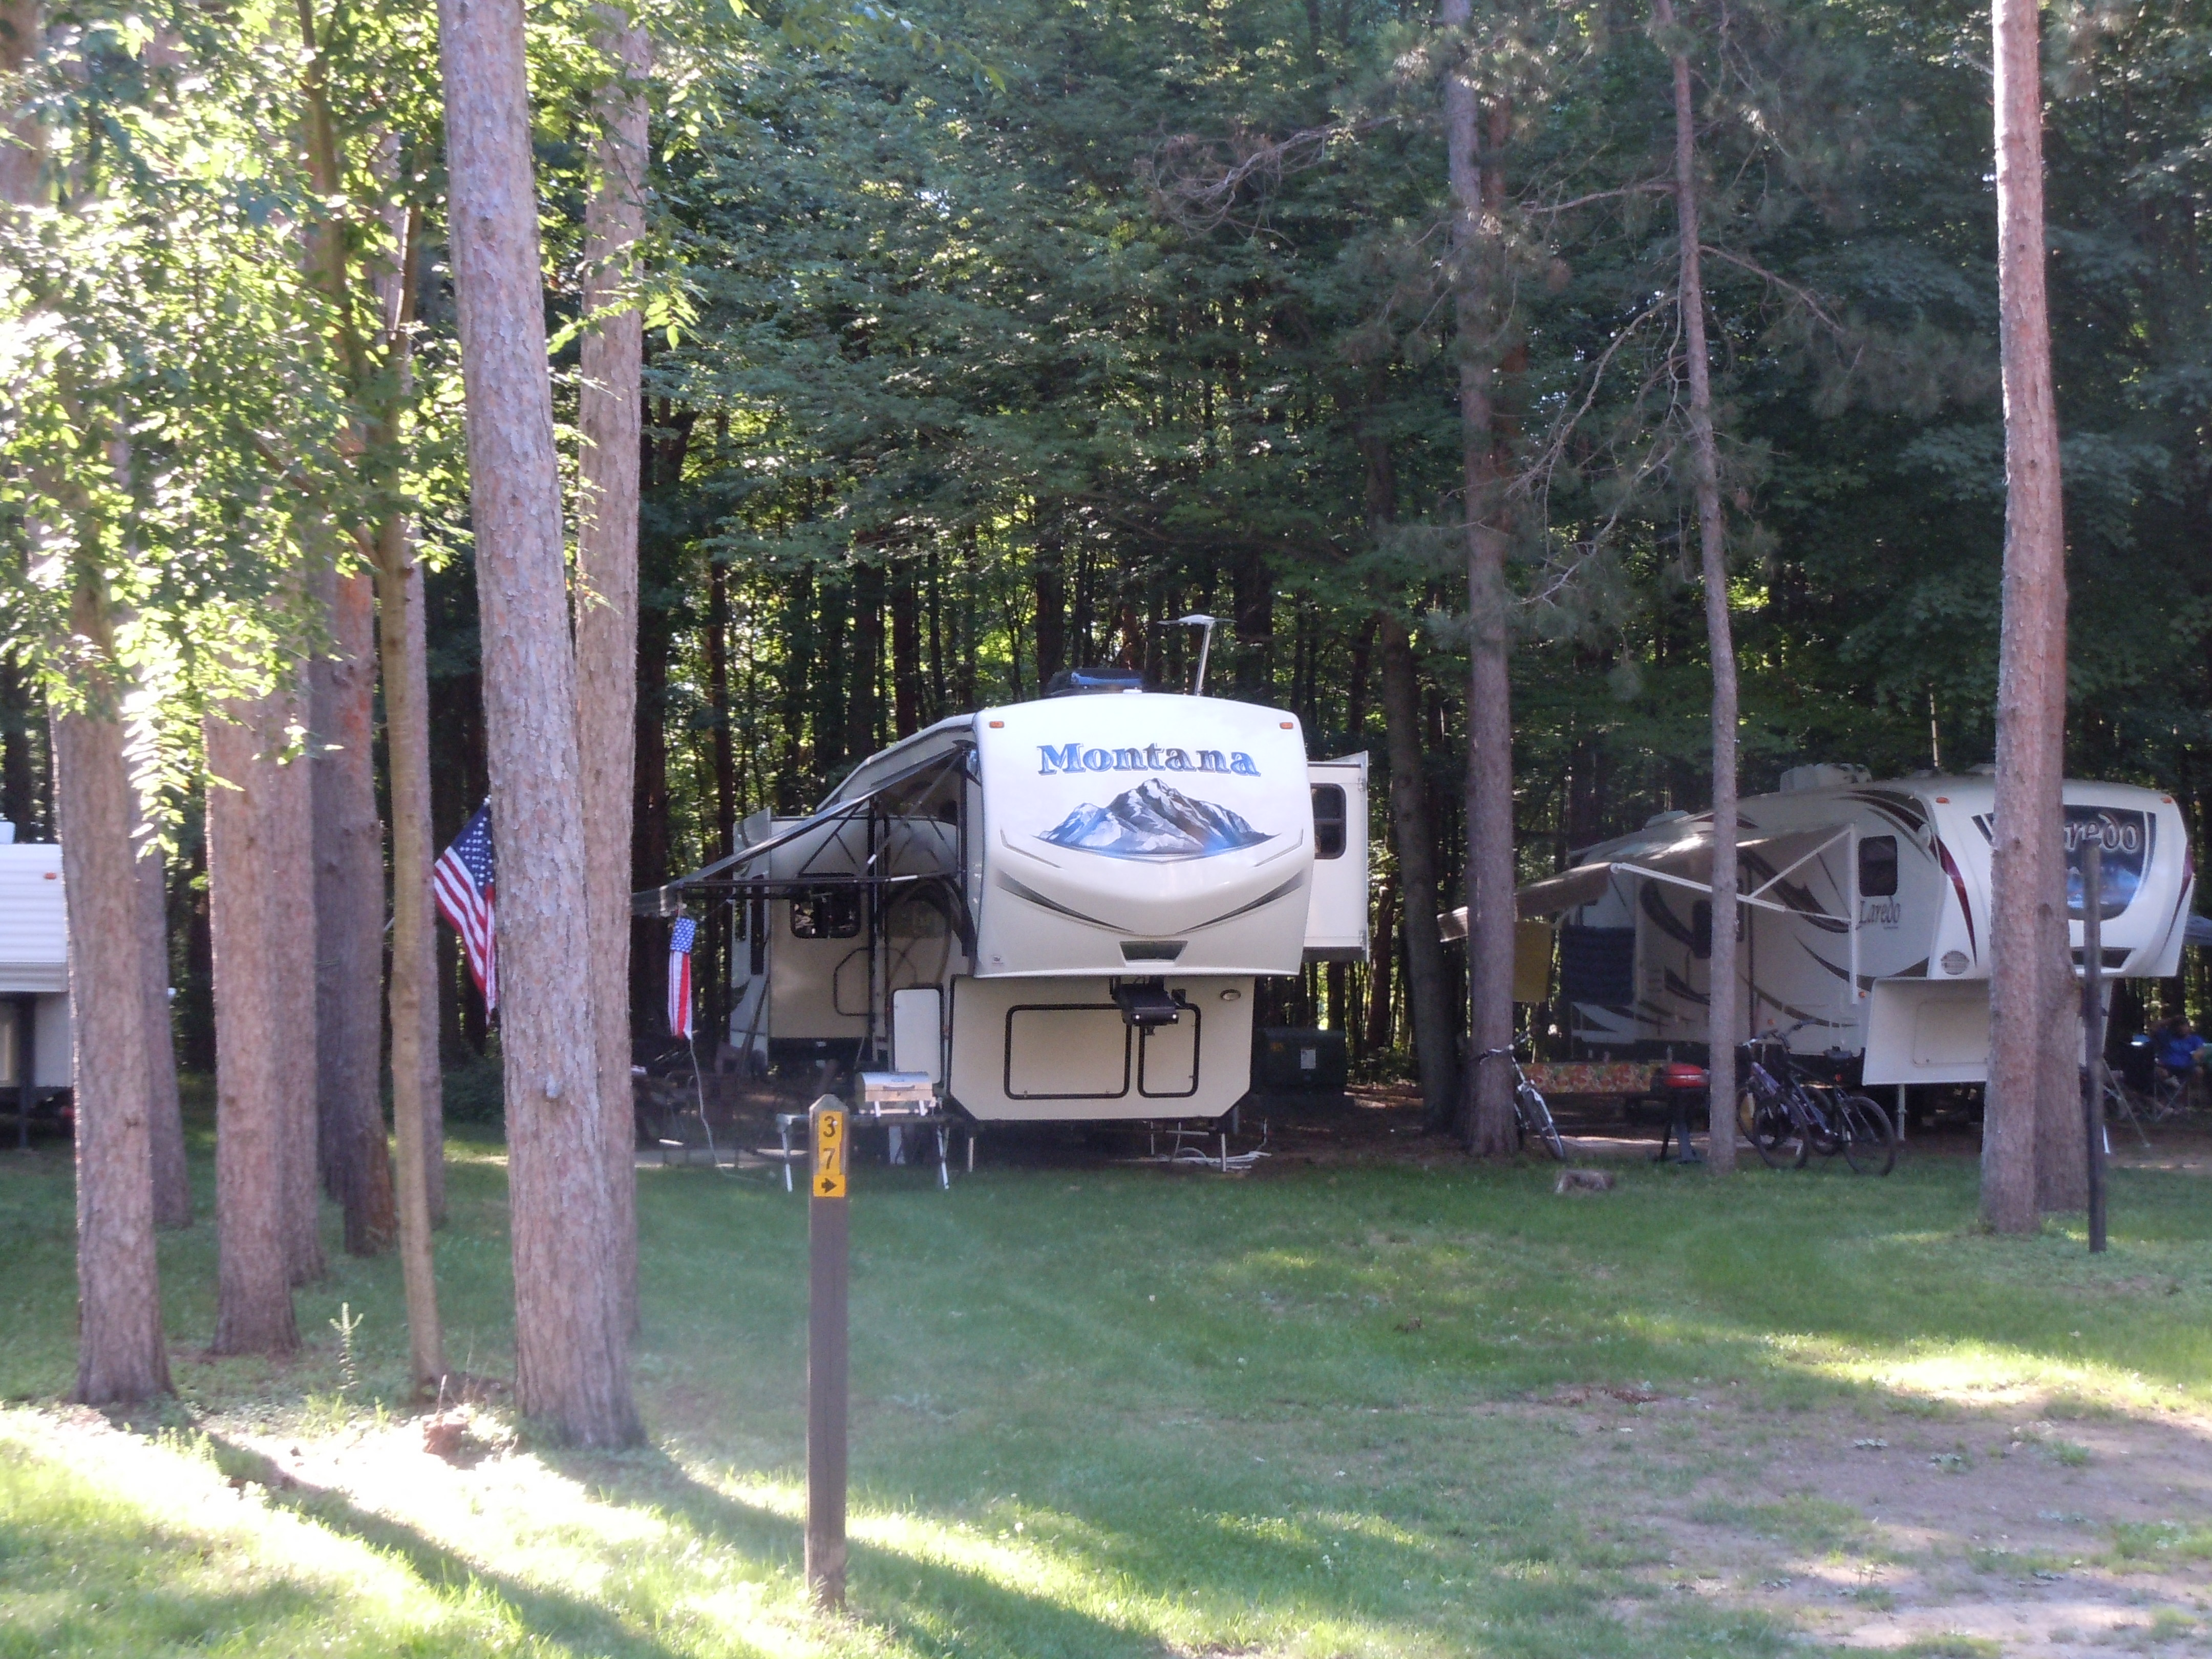 Full hookup campgrounds in west michigan